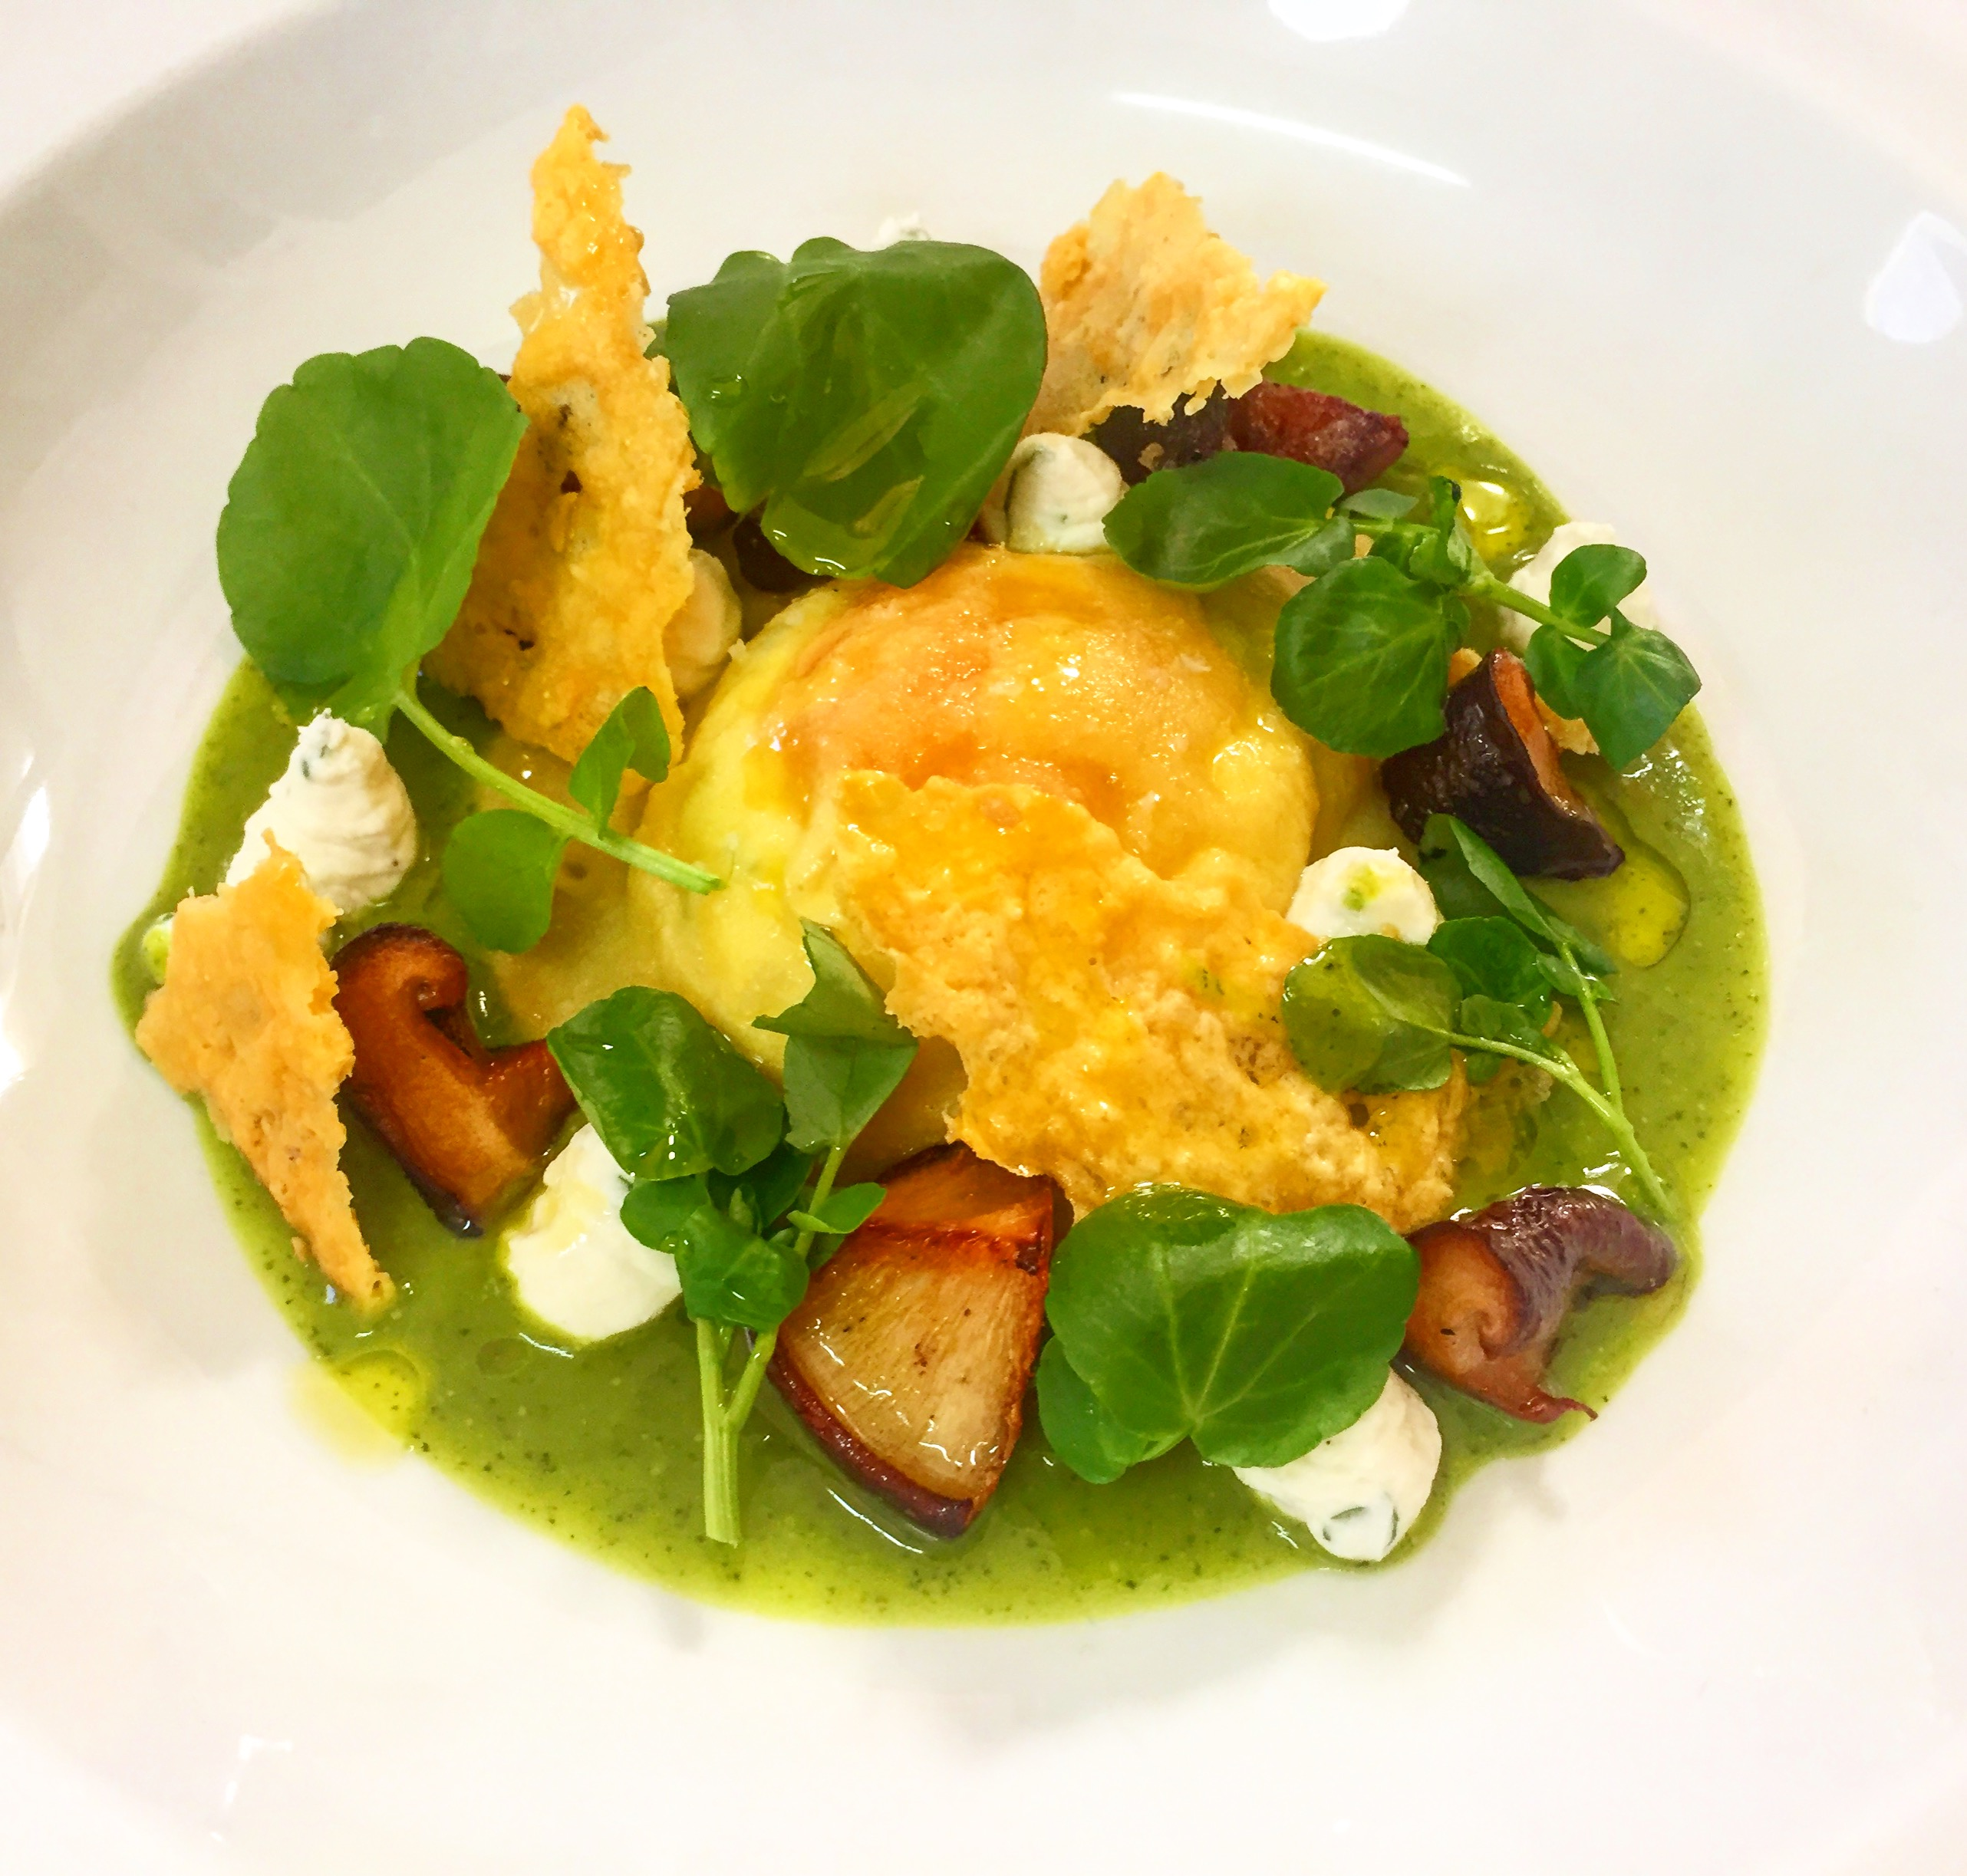 Egg yolk ravioli, watercress veloute